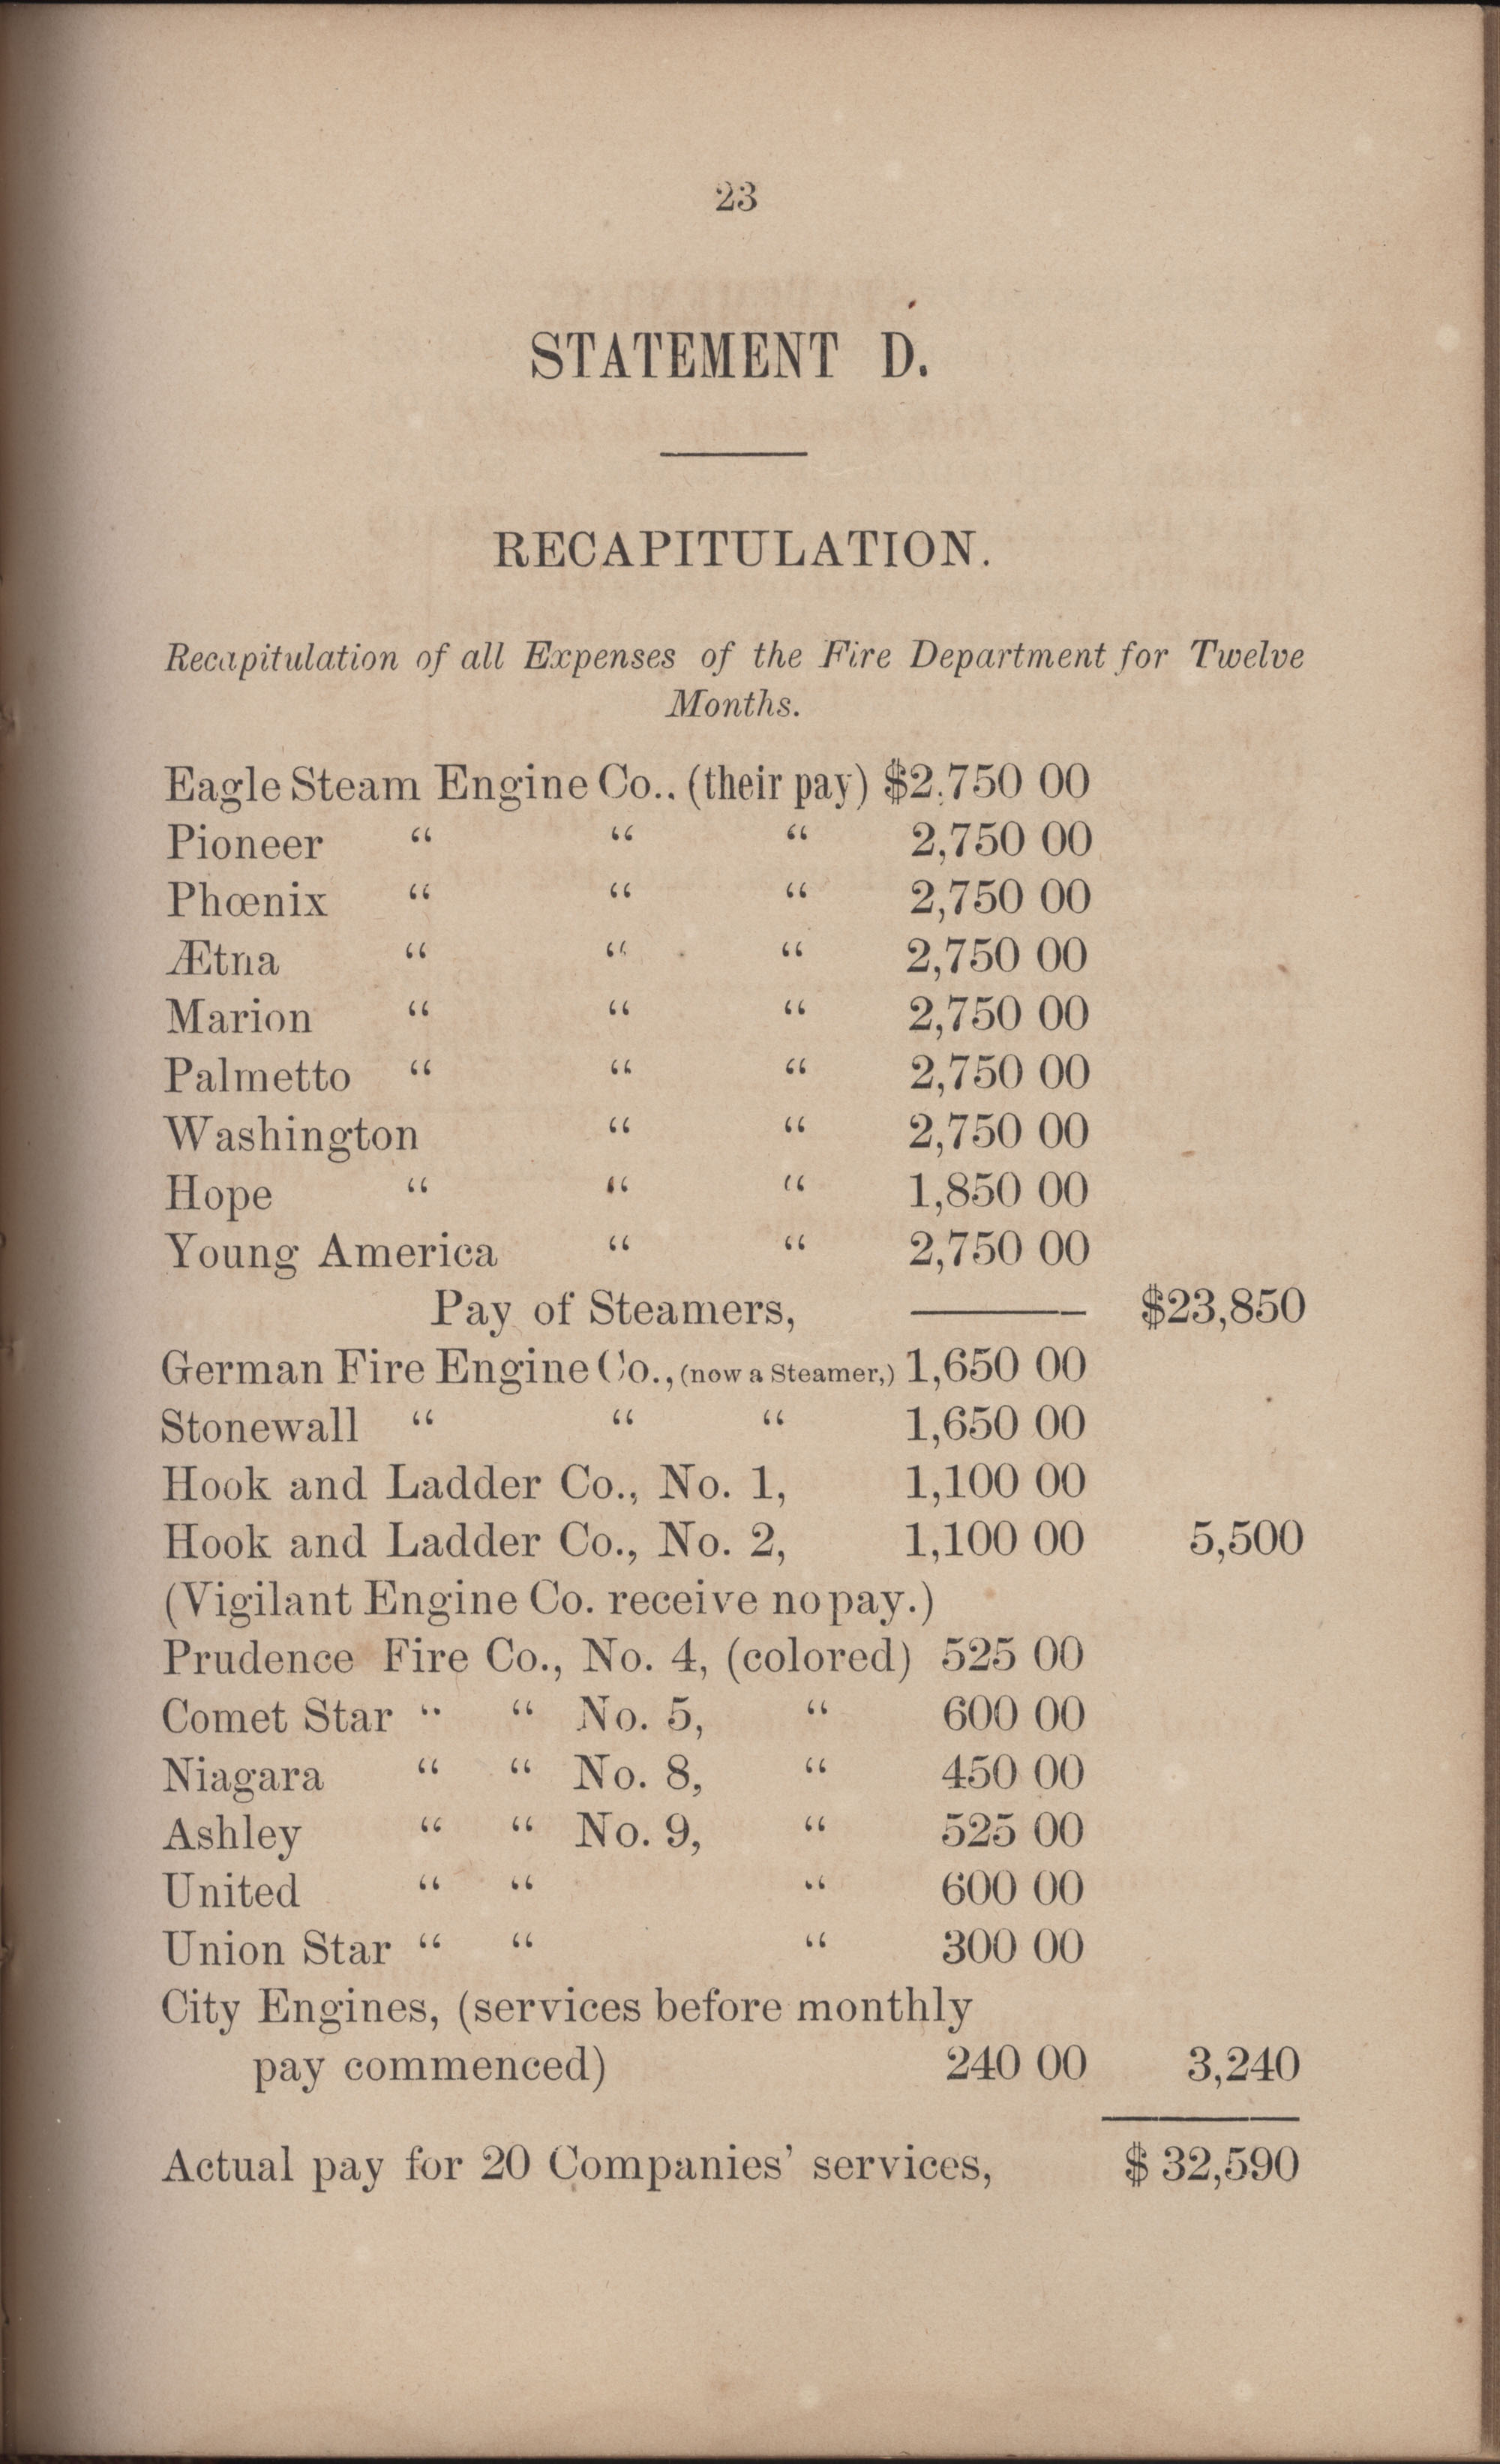 Annual Report of the Chief of the Fire Department of the City of Charleston, page 314